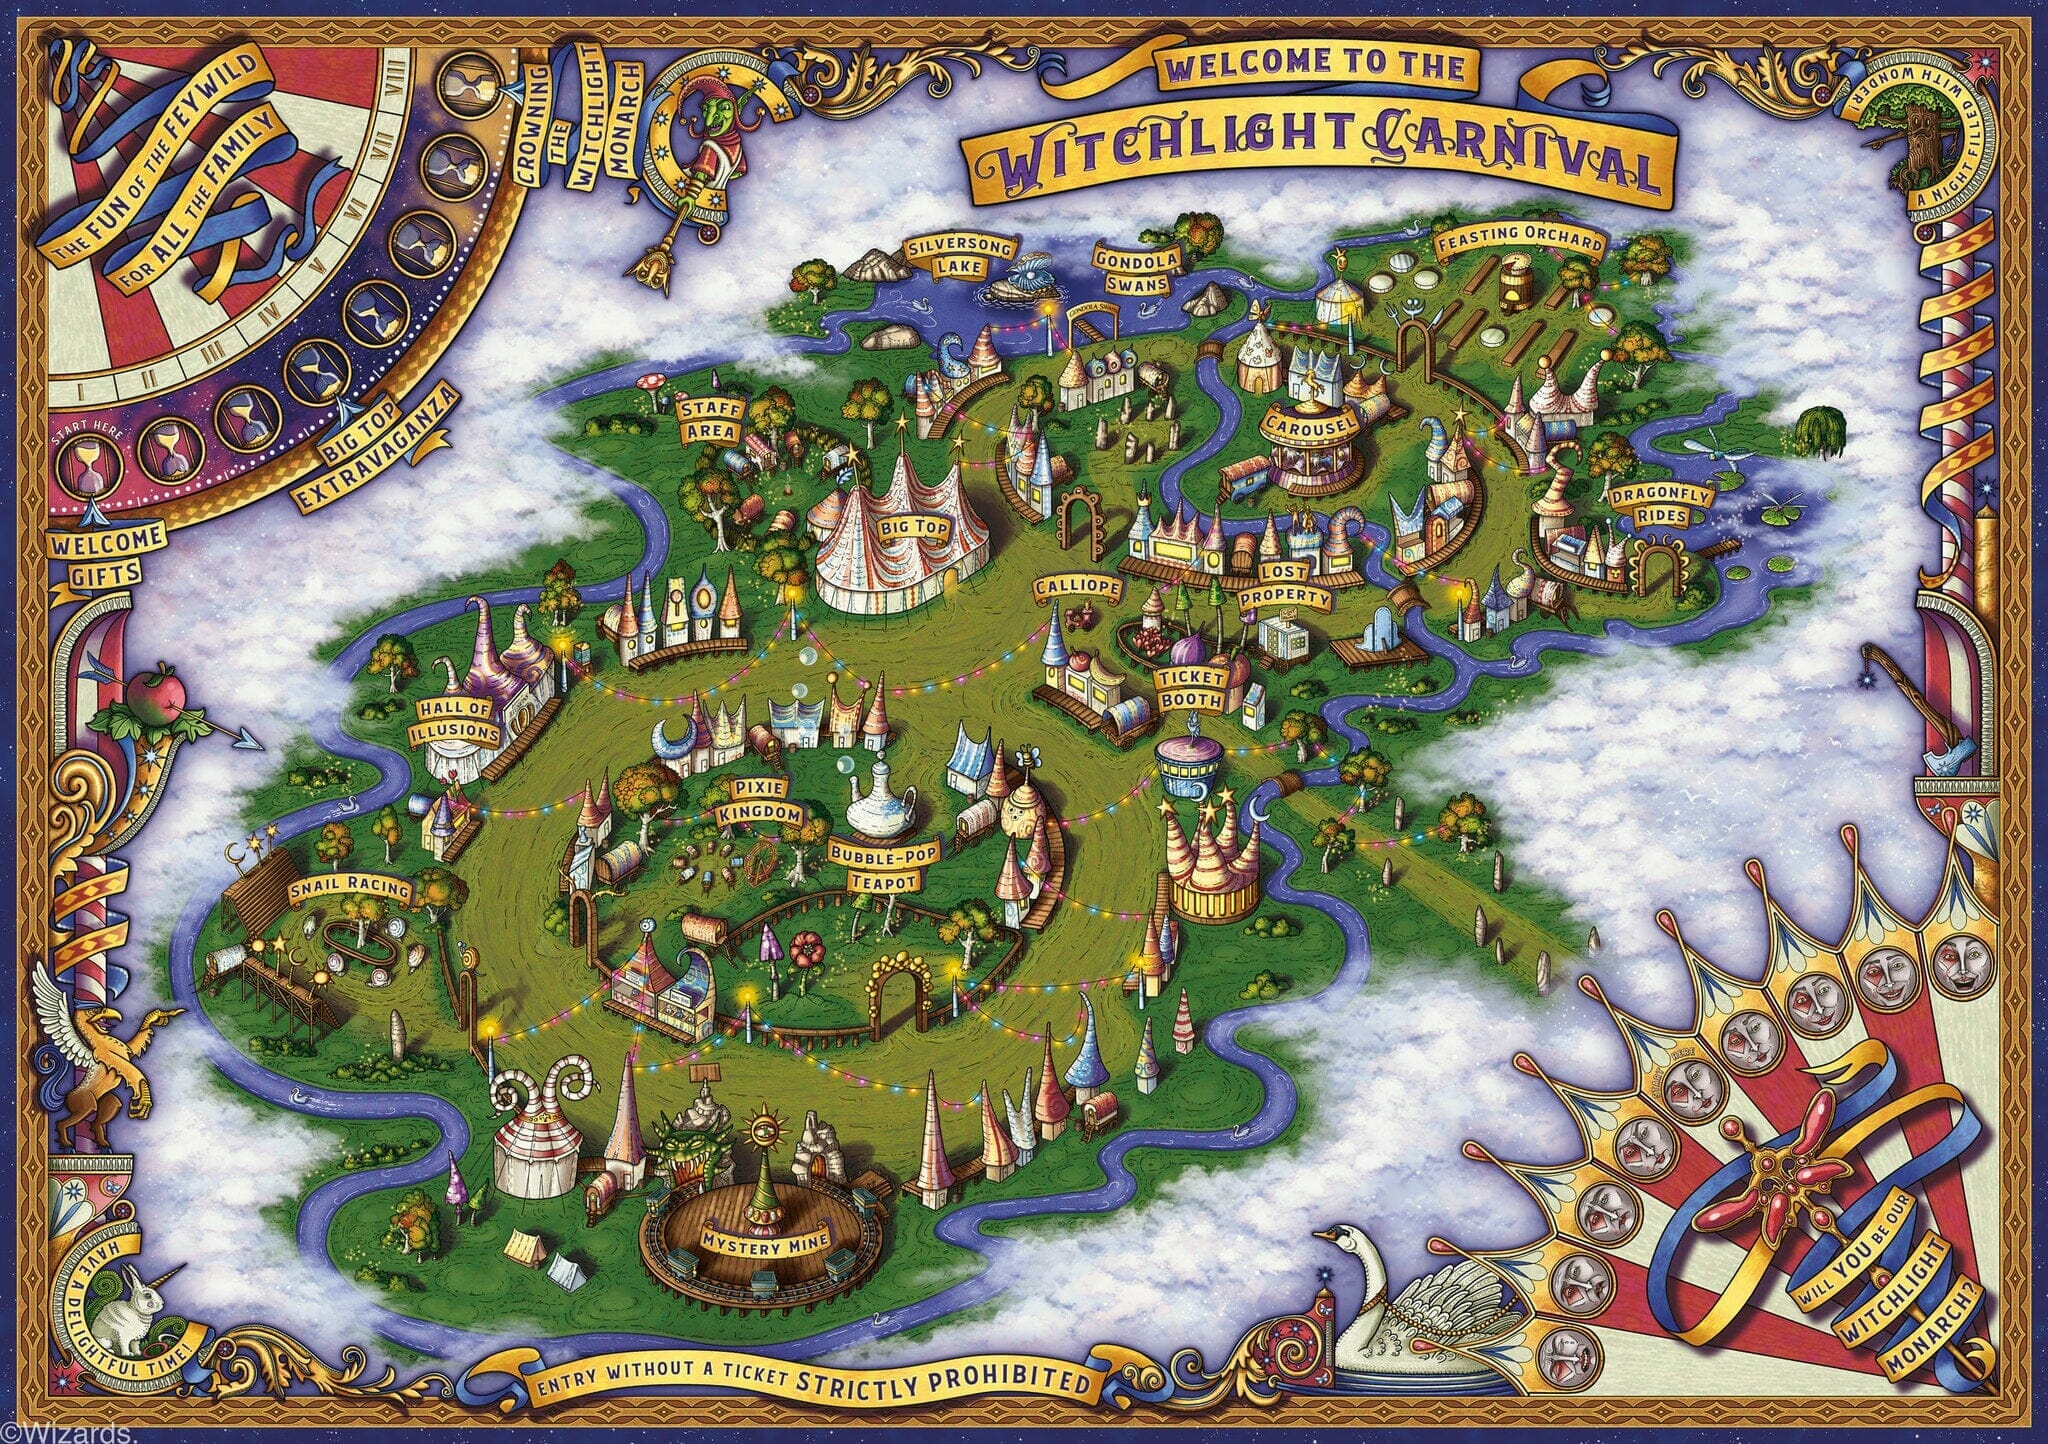 Map of the Witchlight Carnival